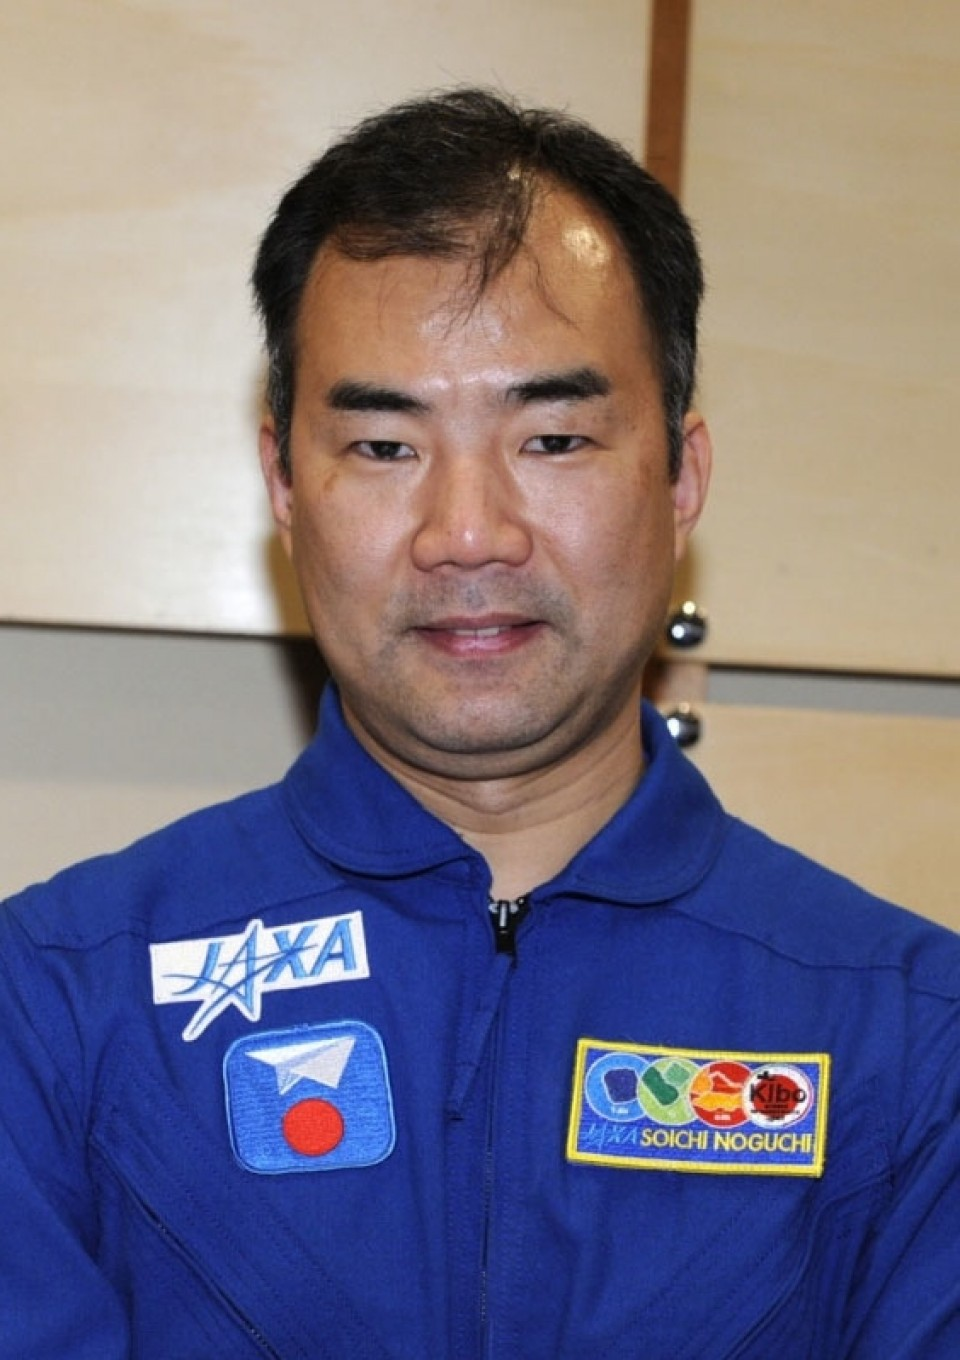 Japanese astronaut Noguchi to join ISS mission again from 2019